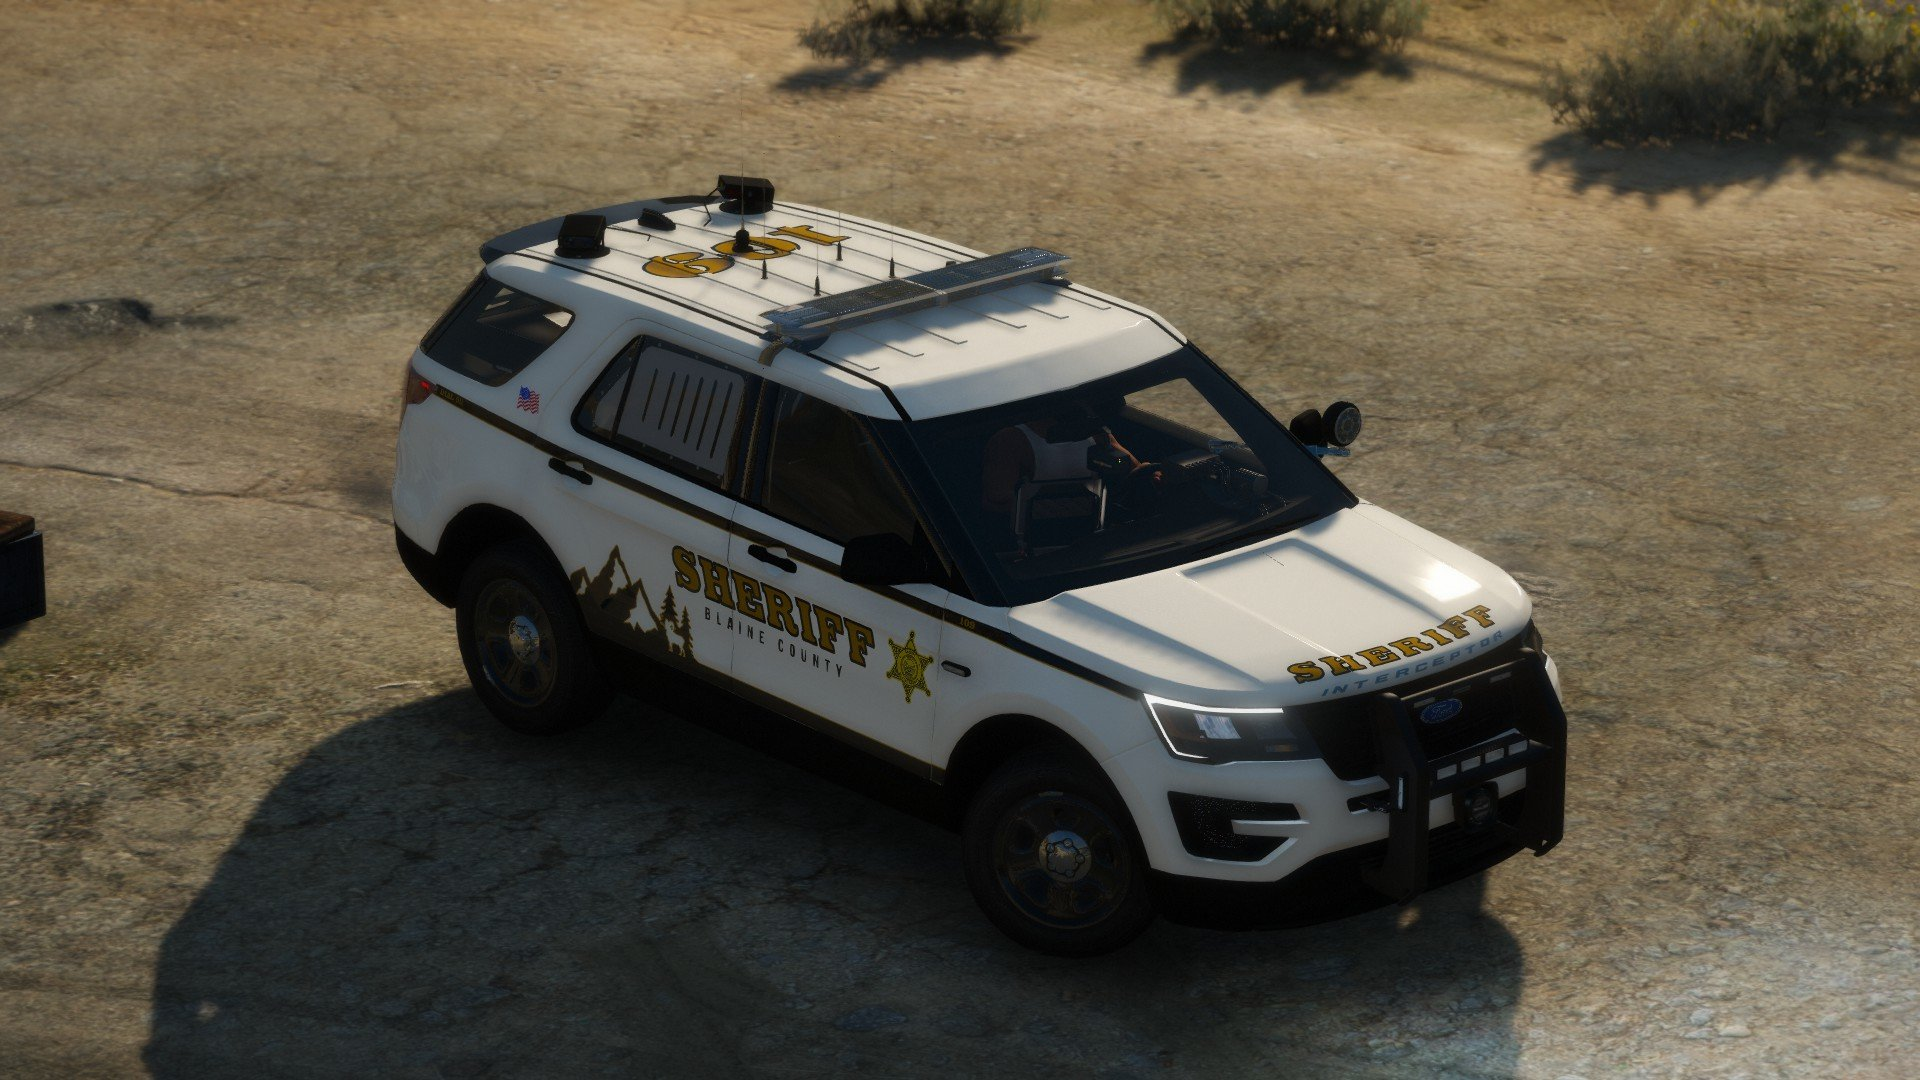 Gallatin Sheriff's Office inspired texture pack